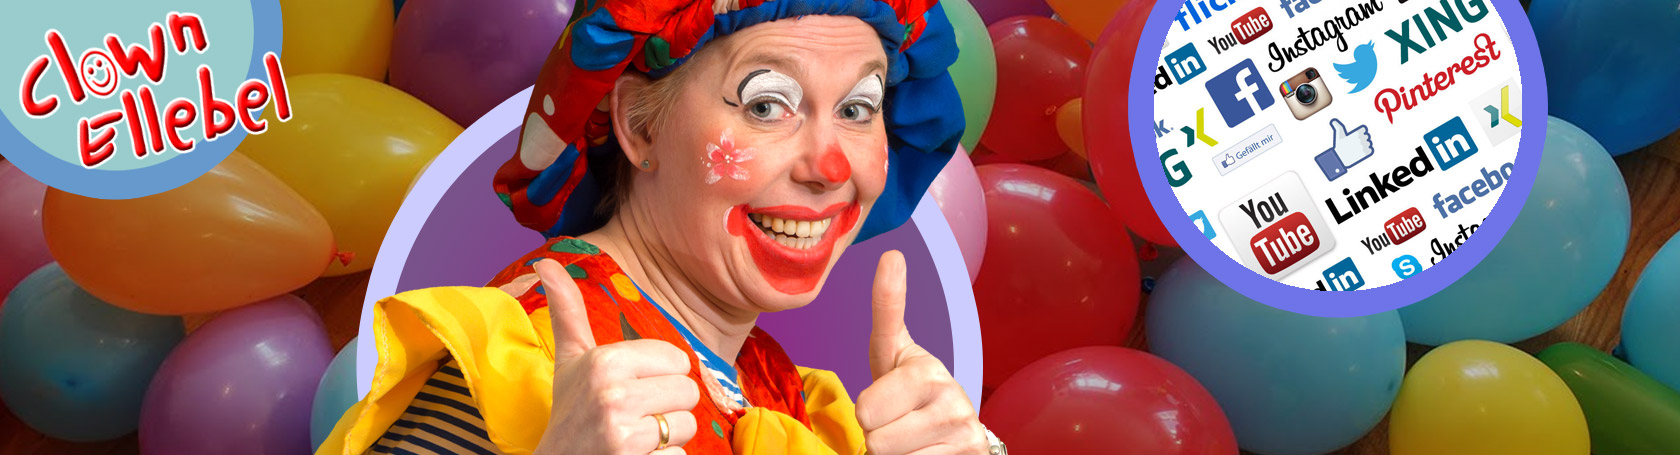 clown ellebel in de media